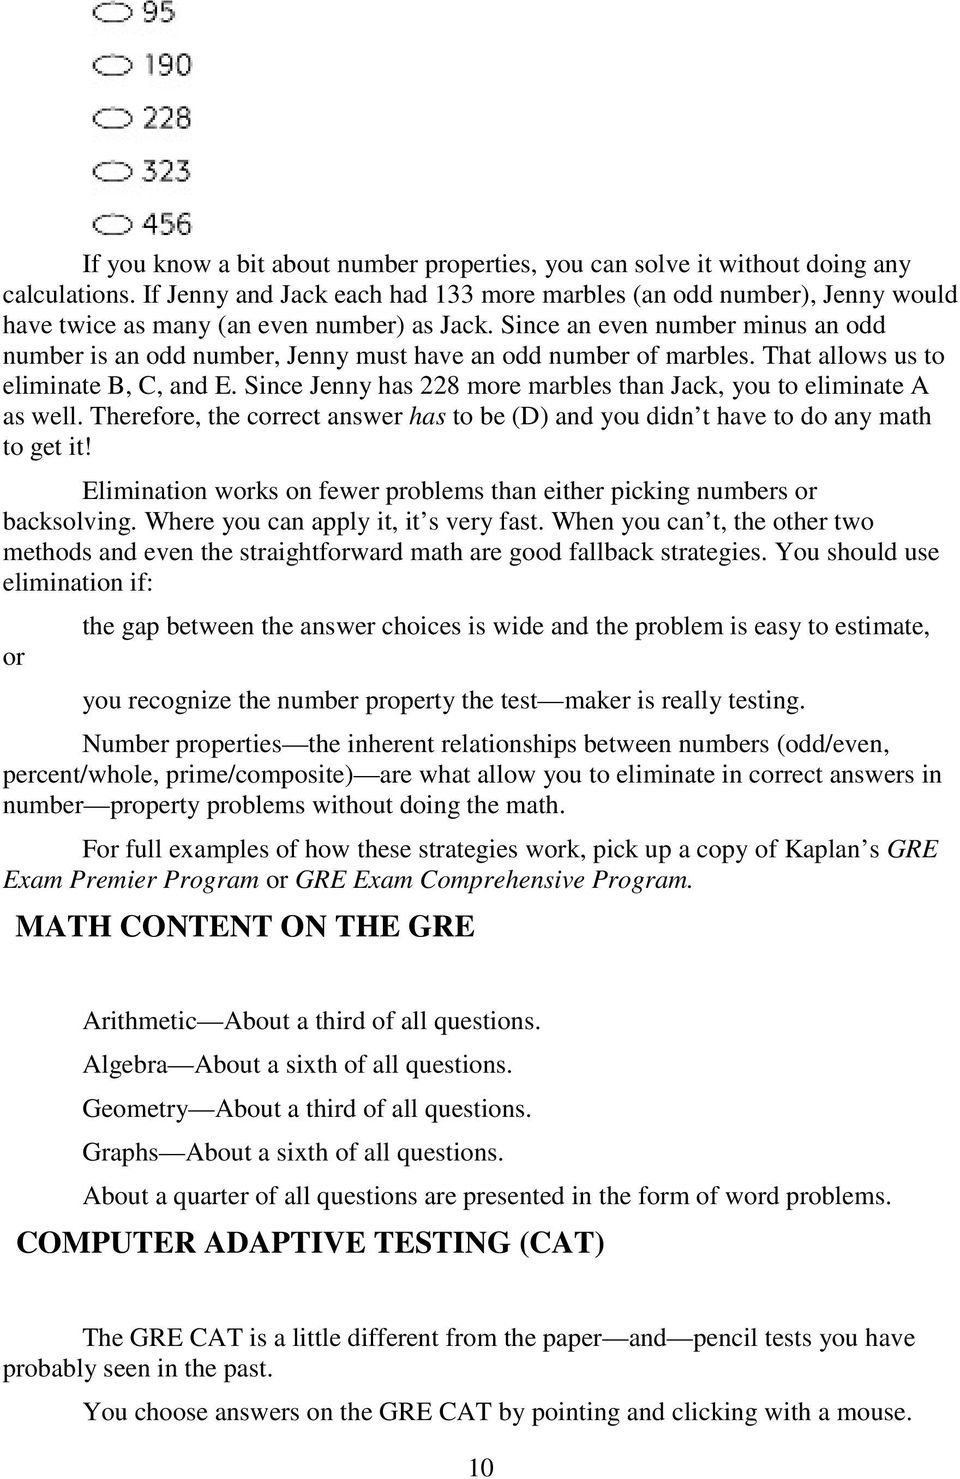 Gre exam math workbook seventh edition pdf since an even number minus an odd number is an odd number jenny must have fandeluxe Gallery